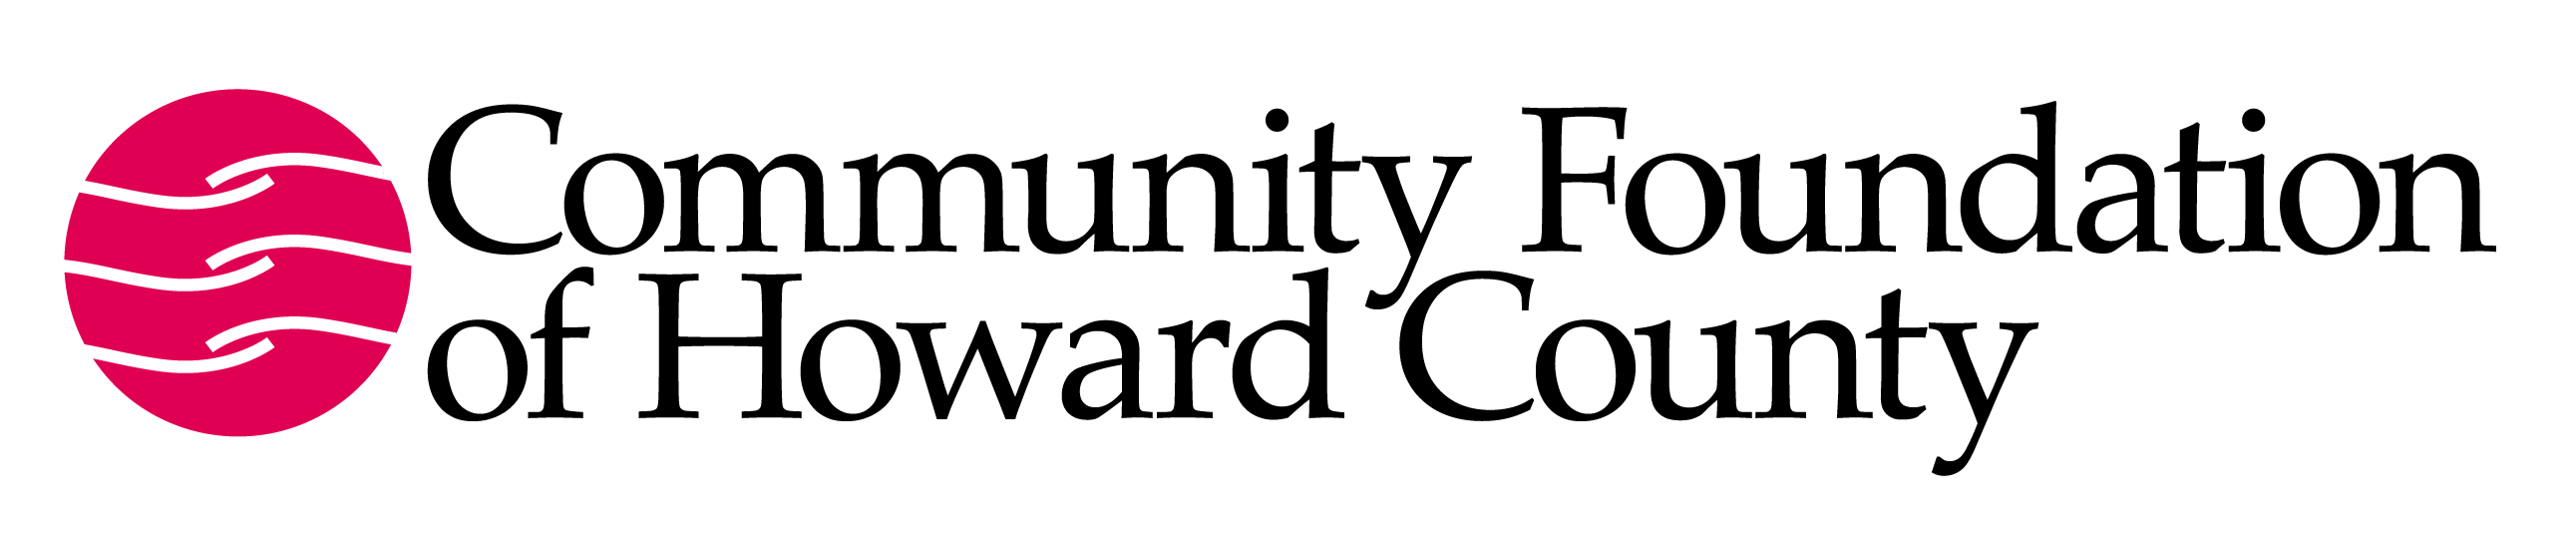 Image result for Community Foundation of Howard County